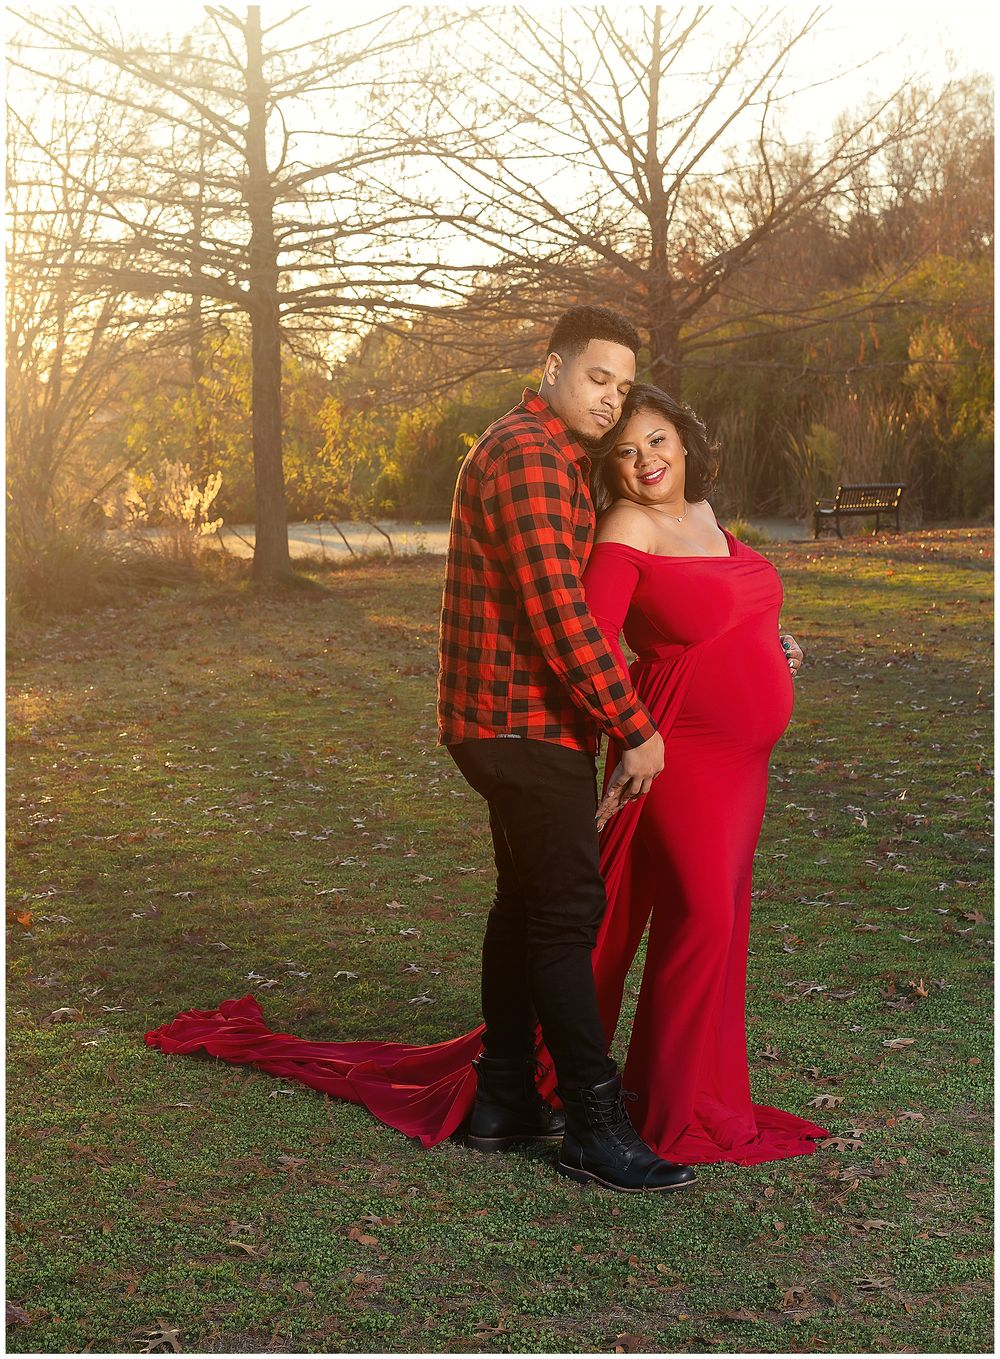 Austin Newborn Photography Maternity Portrait Modern outdoors sunset portrait in red